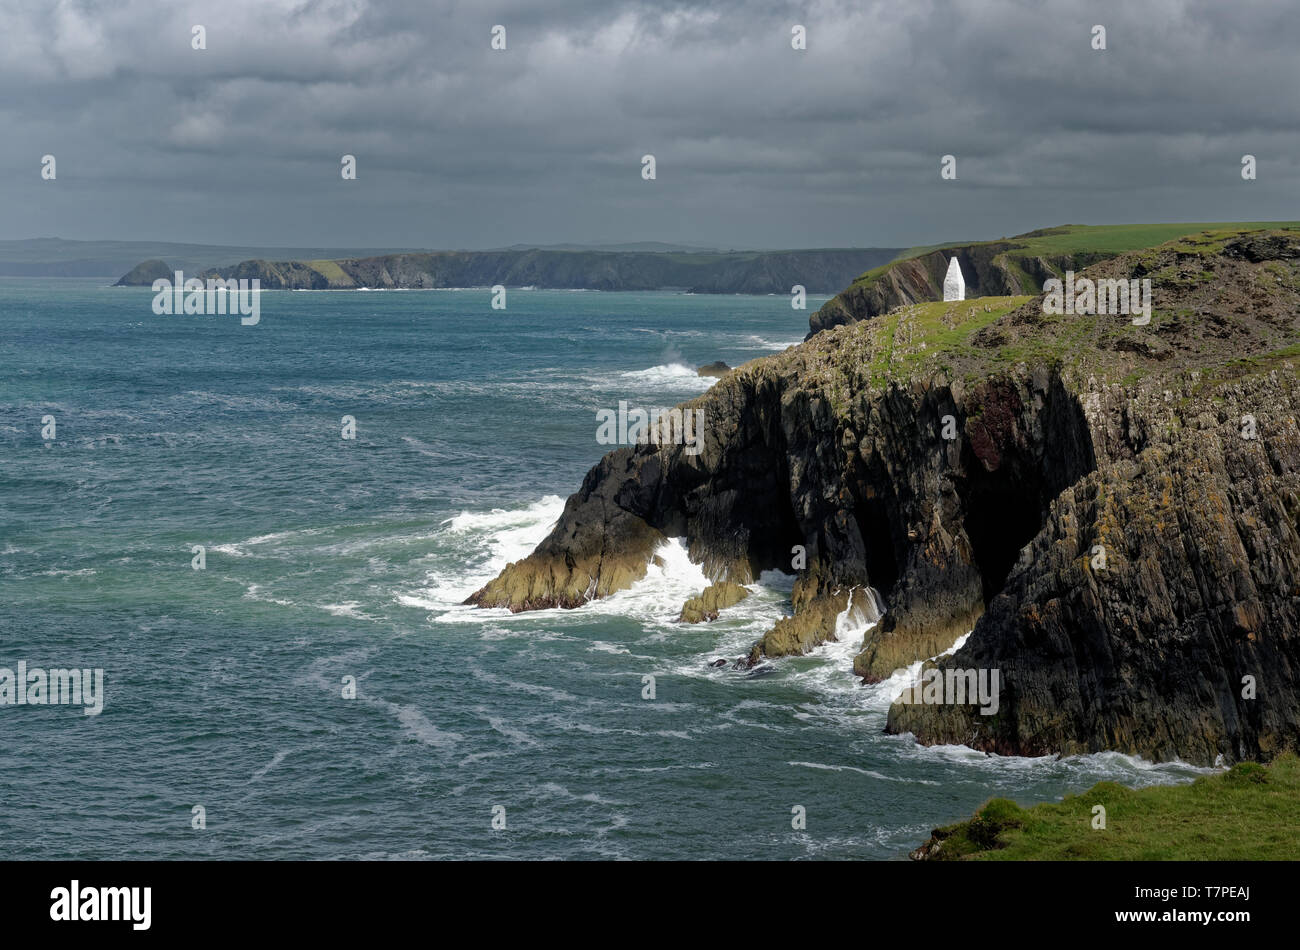 Dramatic cliffs and a white stone navigation marker in the sunlight on the Pembrokeshire Coast Path at the entrance to Porthgain harbour, Wales - Stock Image